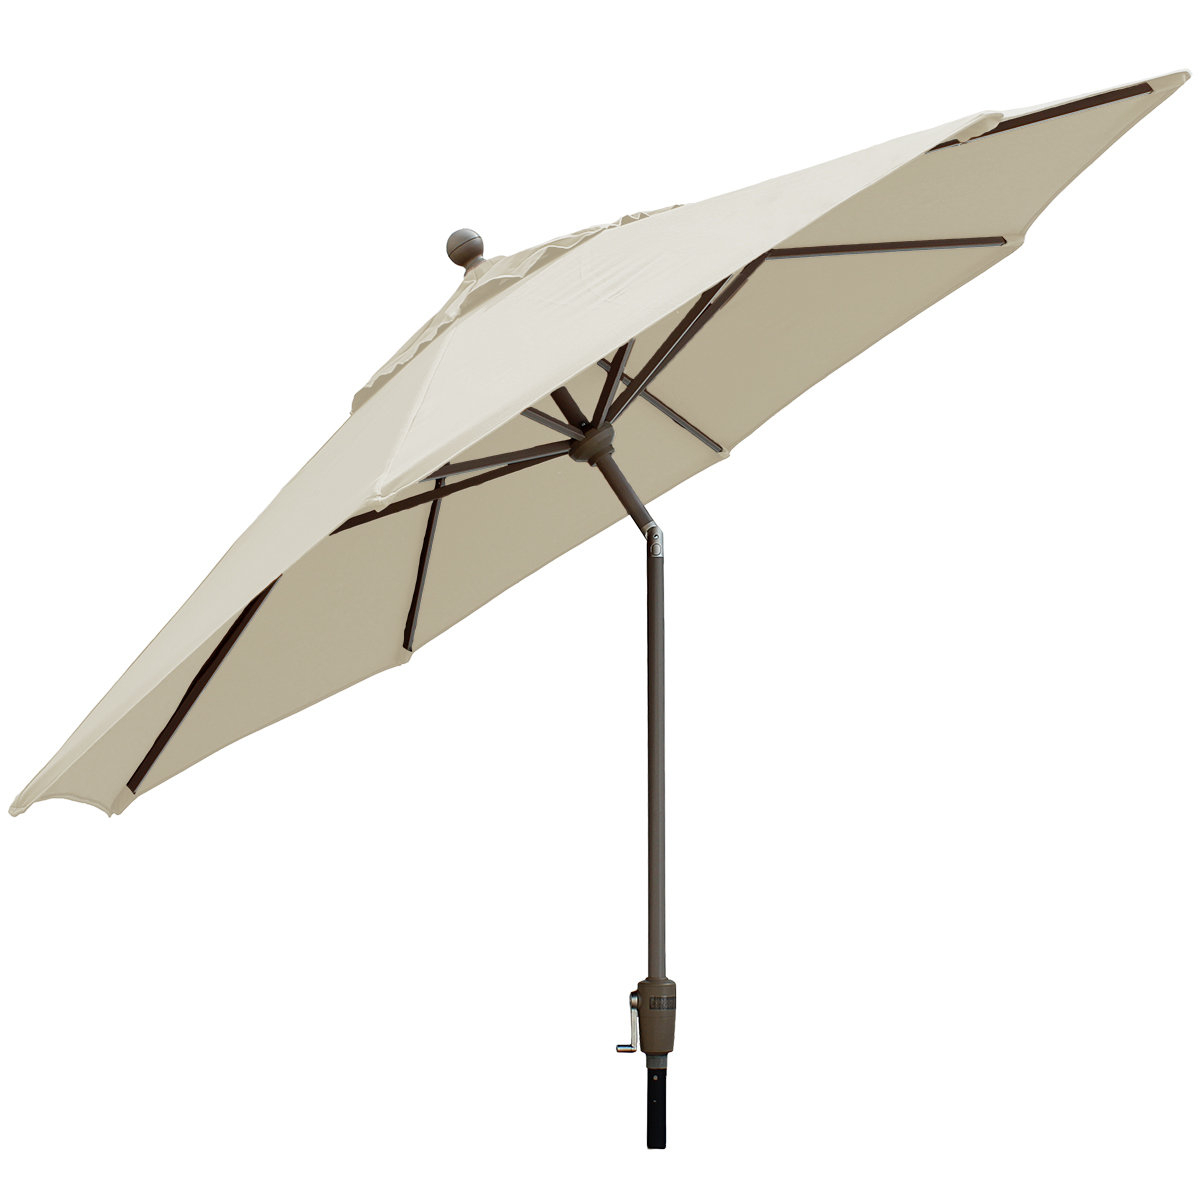 Crowland 9' Market Sunbrella Umbrella Intended For Most Recently Released Mucci Madilyn Market Sunbrella Umbrellas (View 17 of 20)